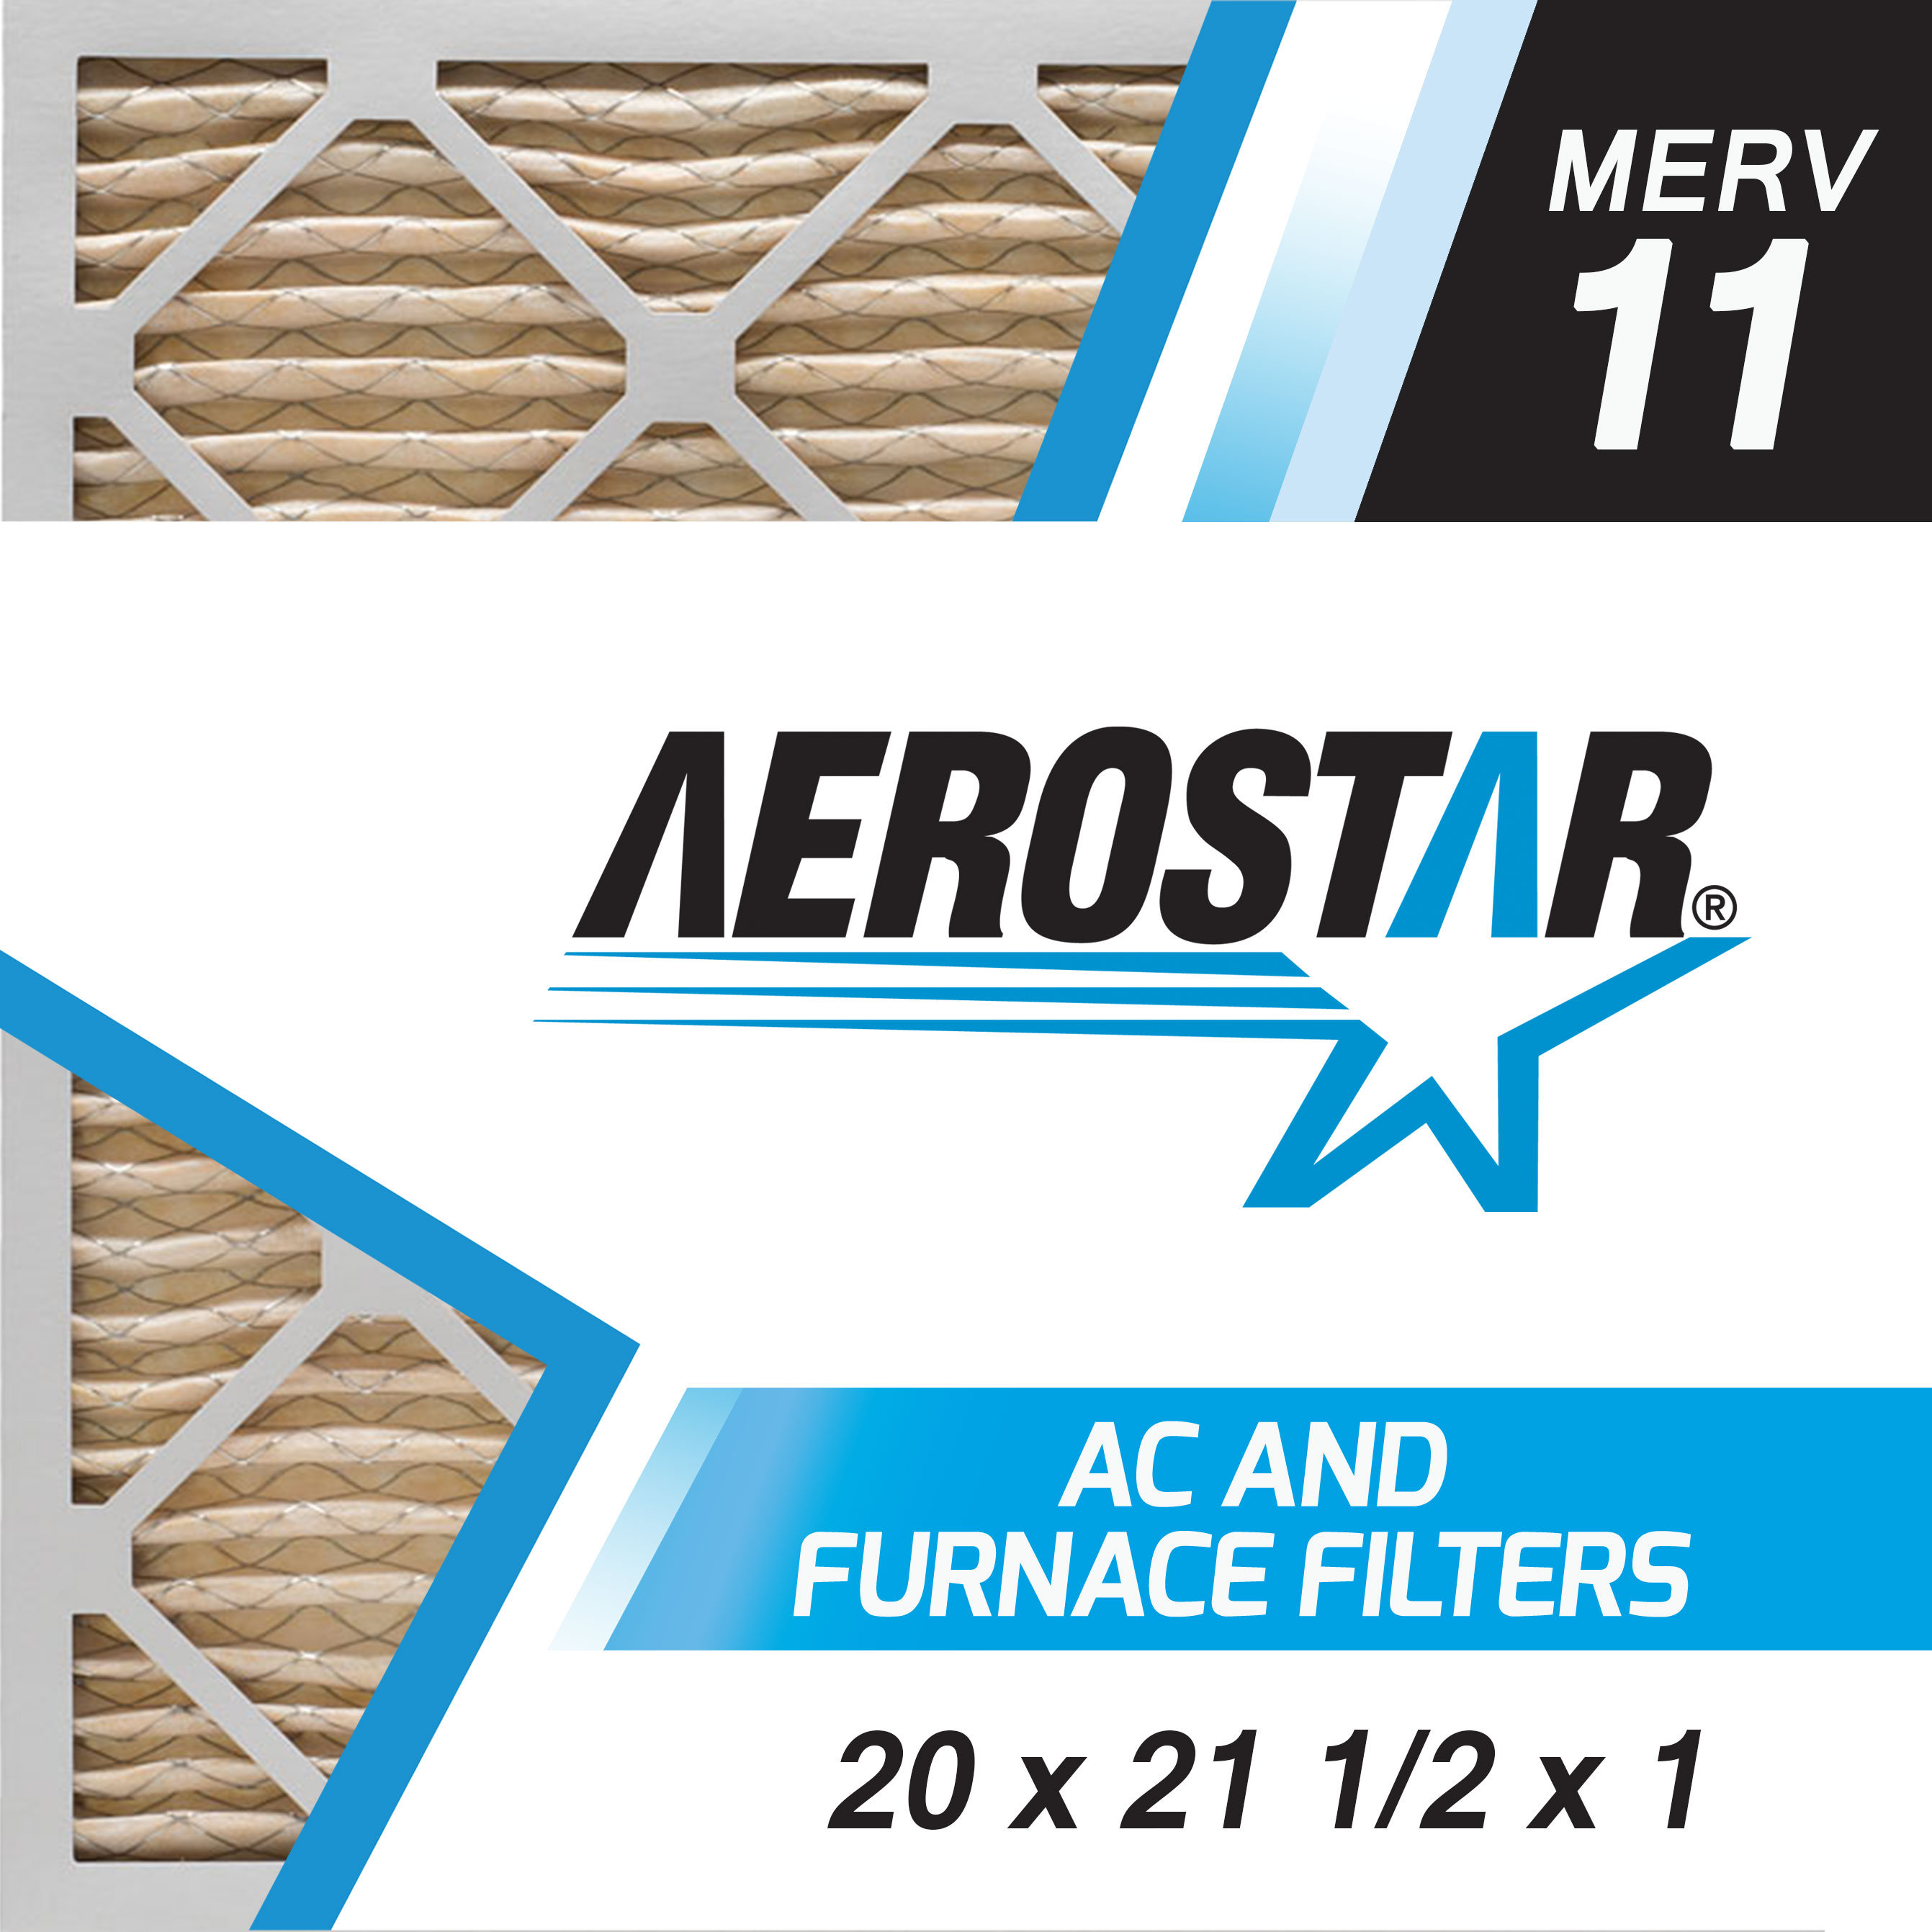 20 x 21 1/2 x 1 AC and Furnace Air Filter by Aerostar - MERV 11, Box of 6 20x21 1/2x1